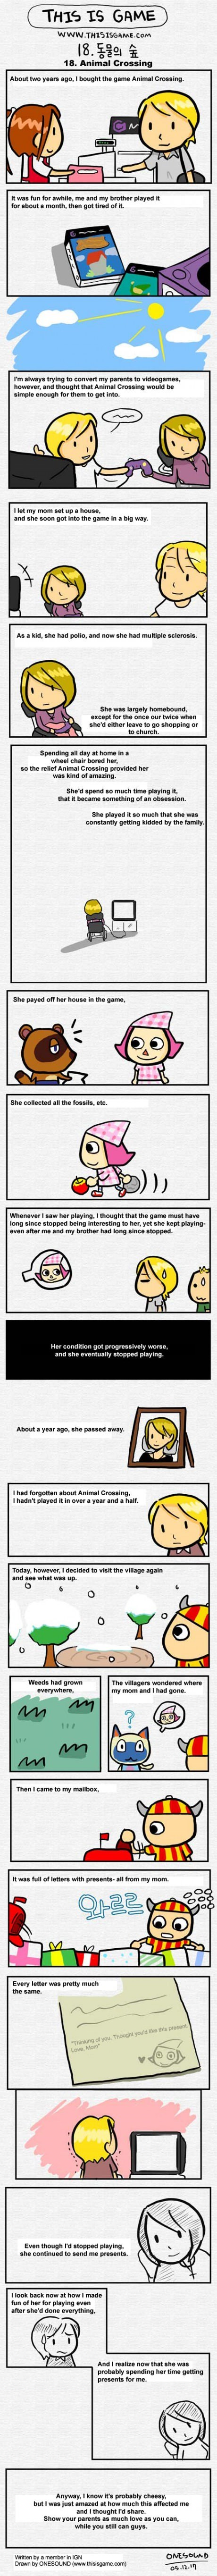 Sad moms animal crossing web comics